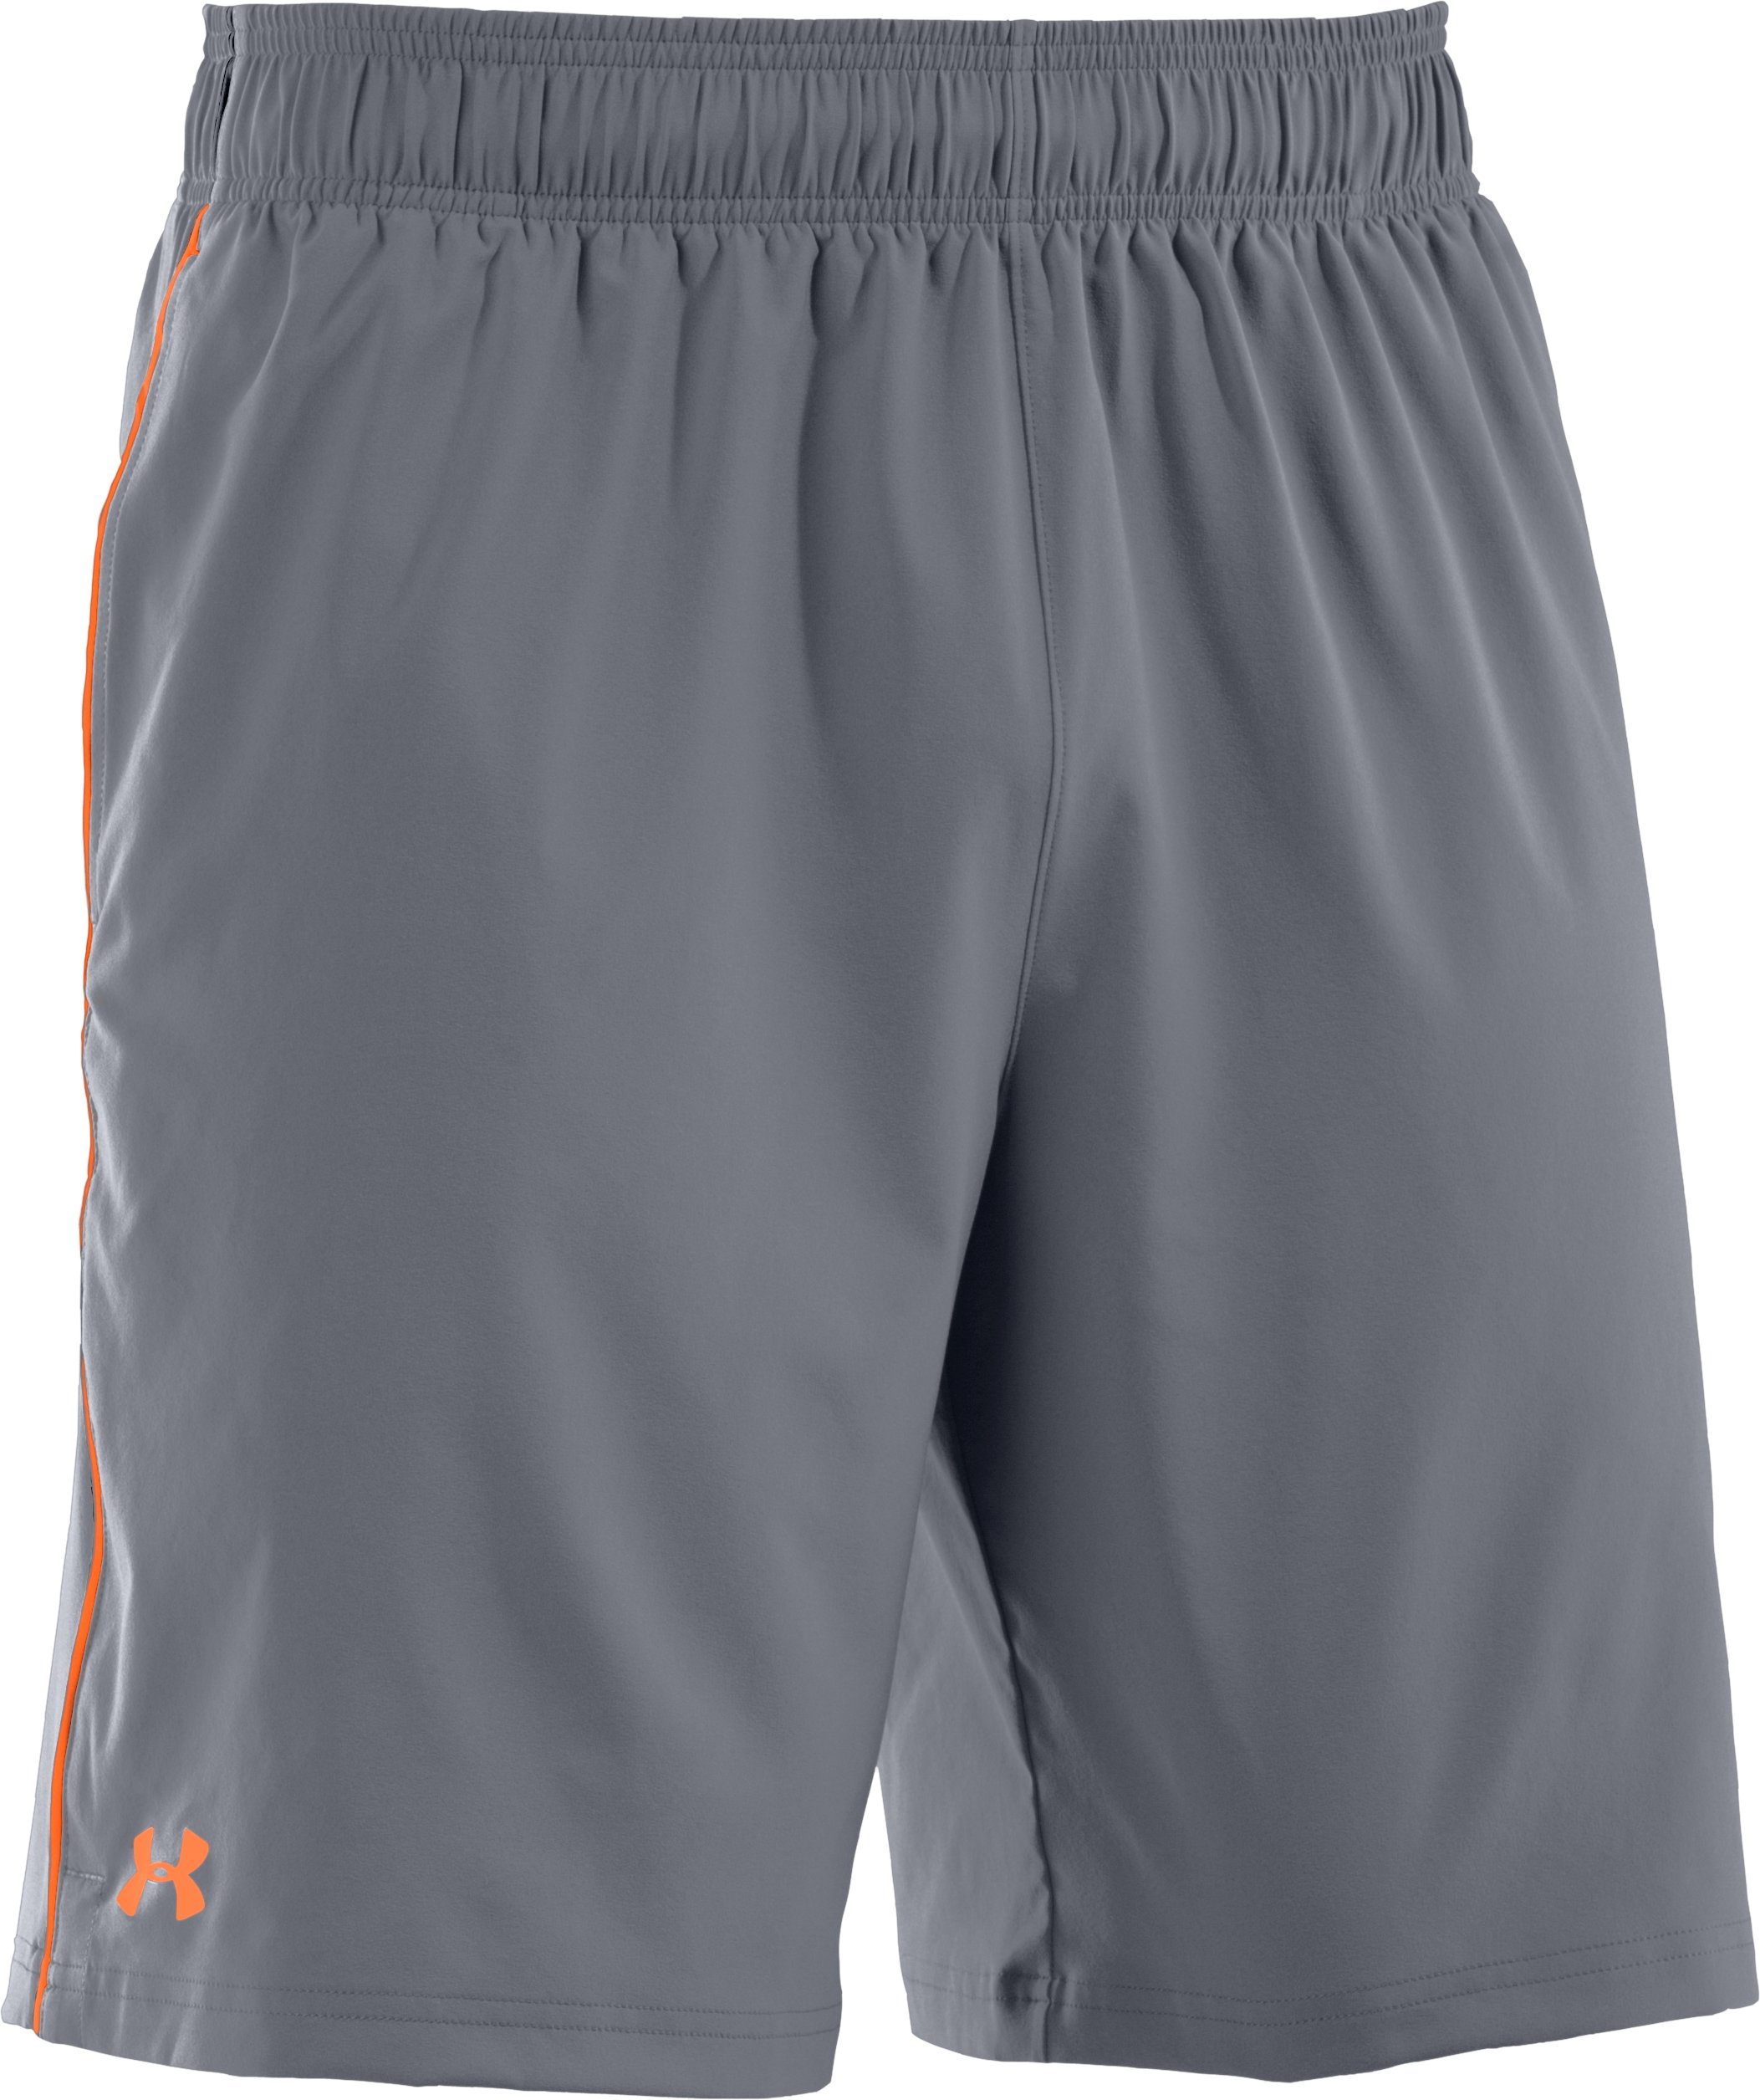 "Men's UA Mirage 10"" Shorts, Steel"